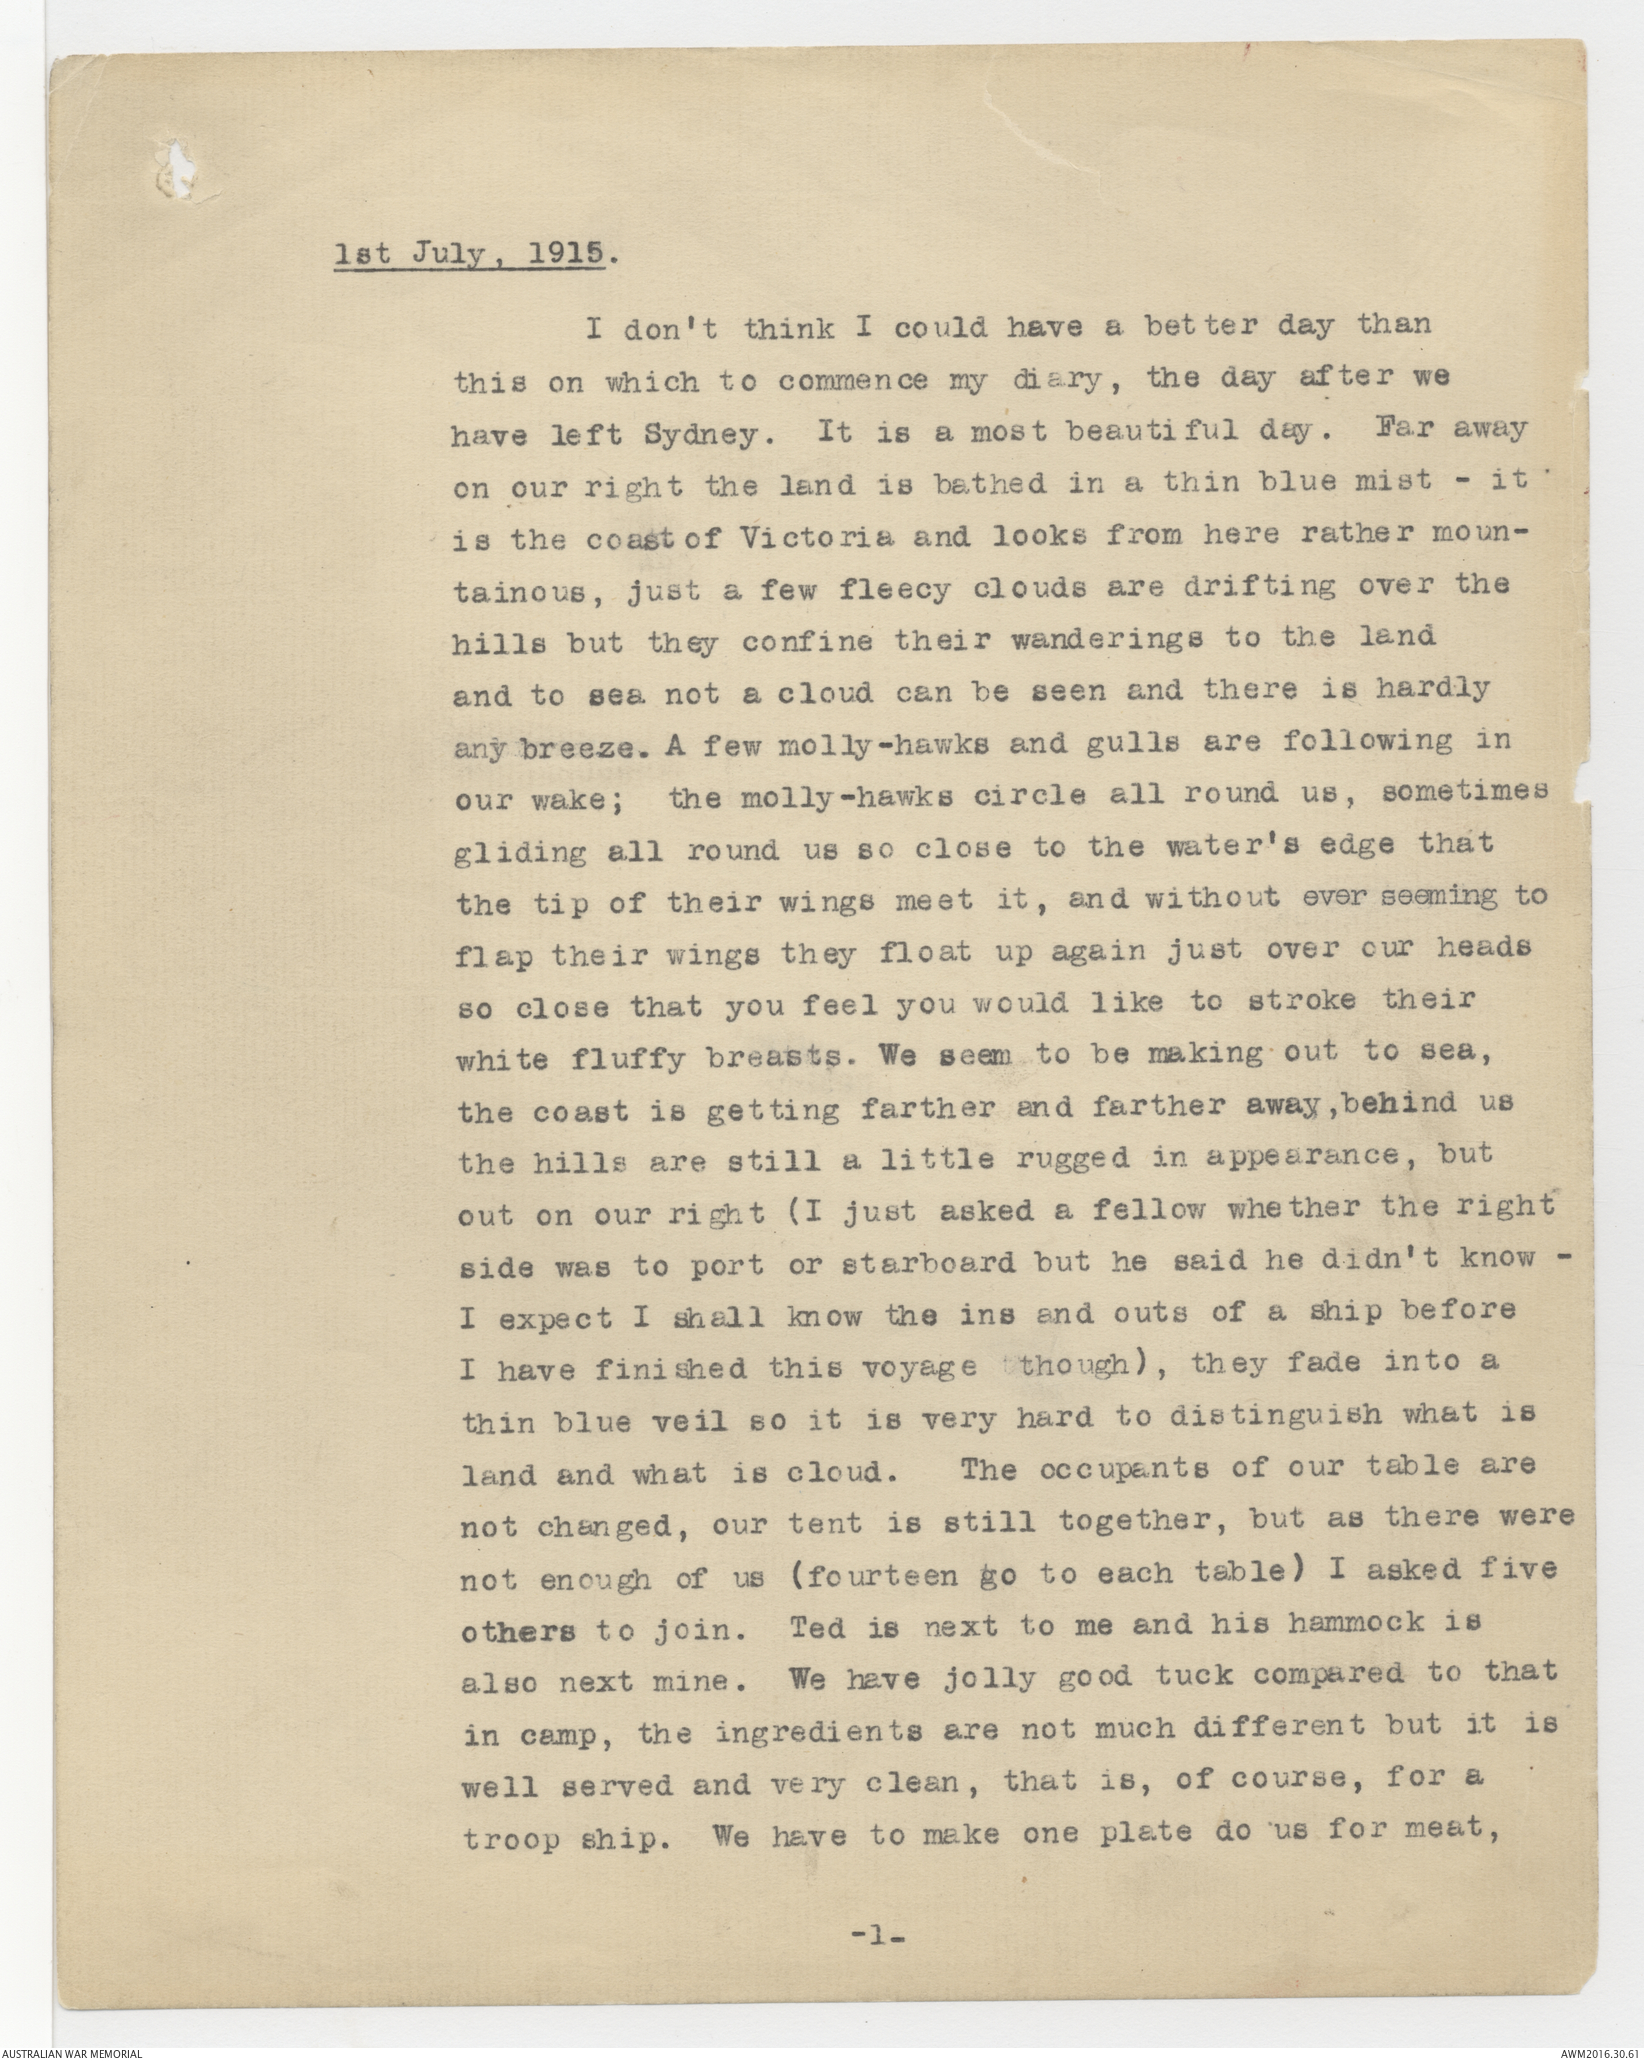 Typescript copy of diary entries of Percy Wellesley Chapman 1 July